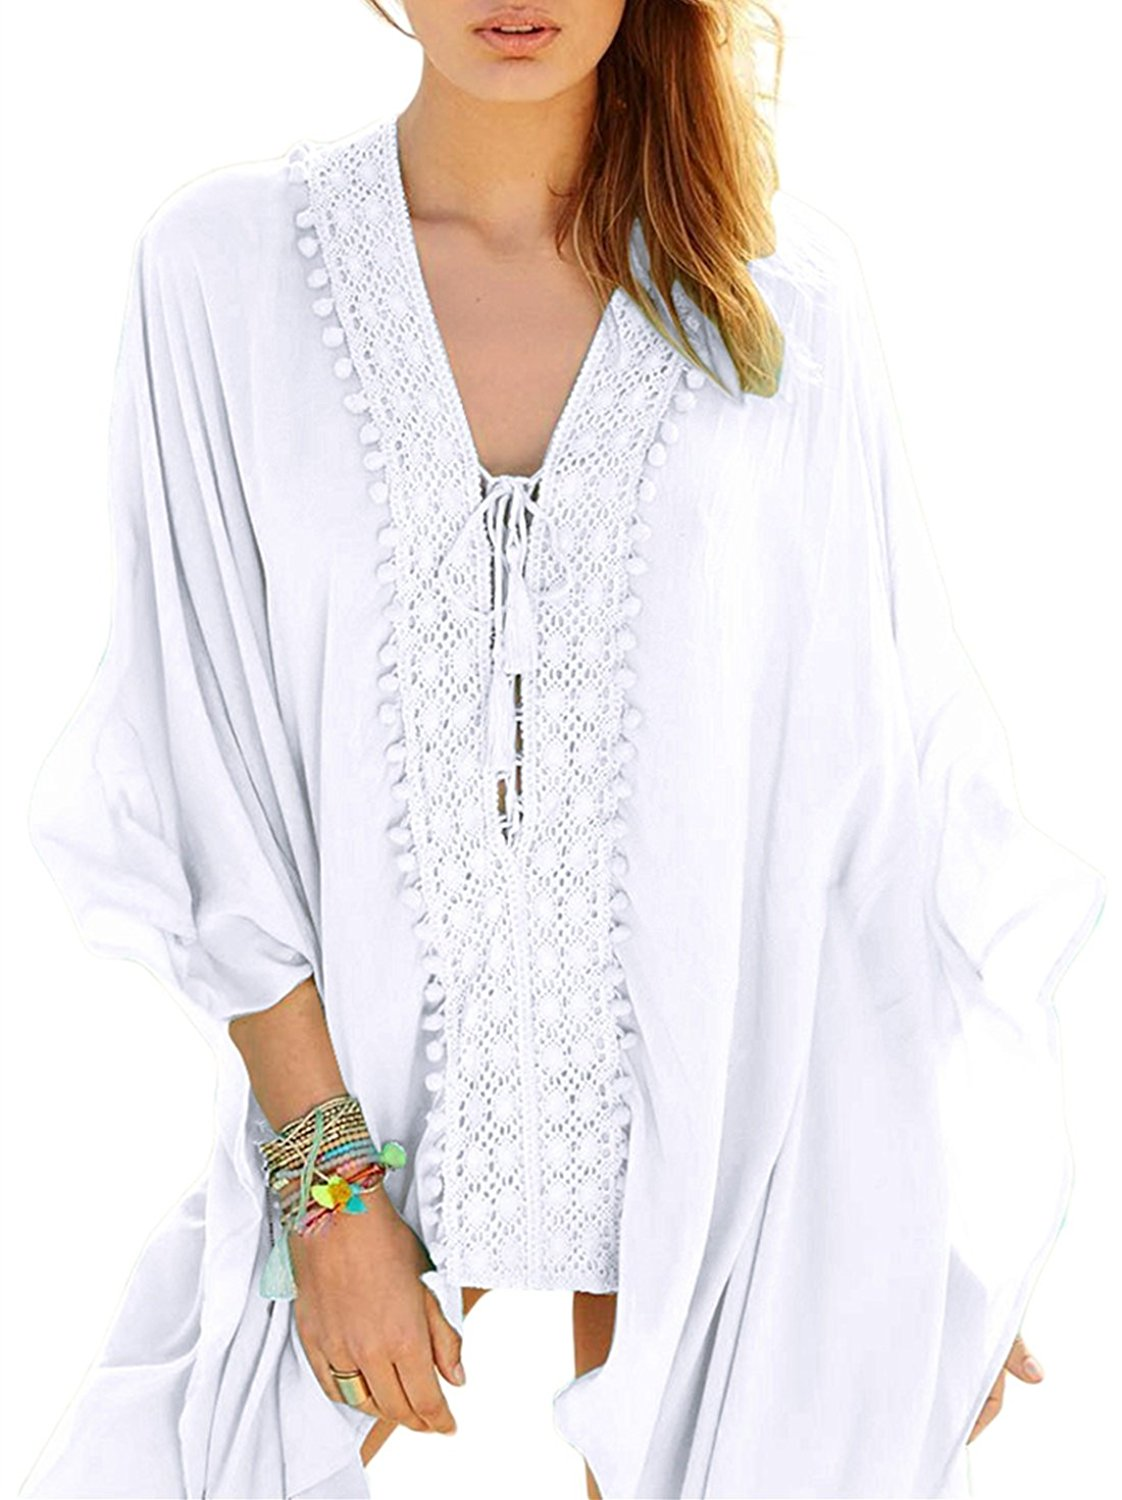 d9f2f4d80644 Get Quotations · Milliwin Women White Crochet Applique Tassel Tie Beach  Kaftan Bikini Cover up Beach